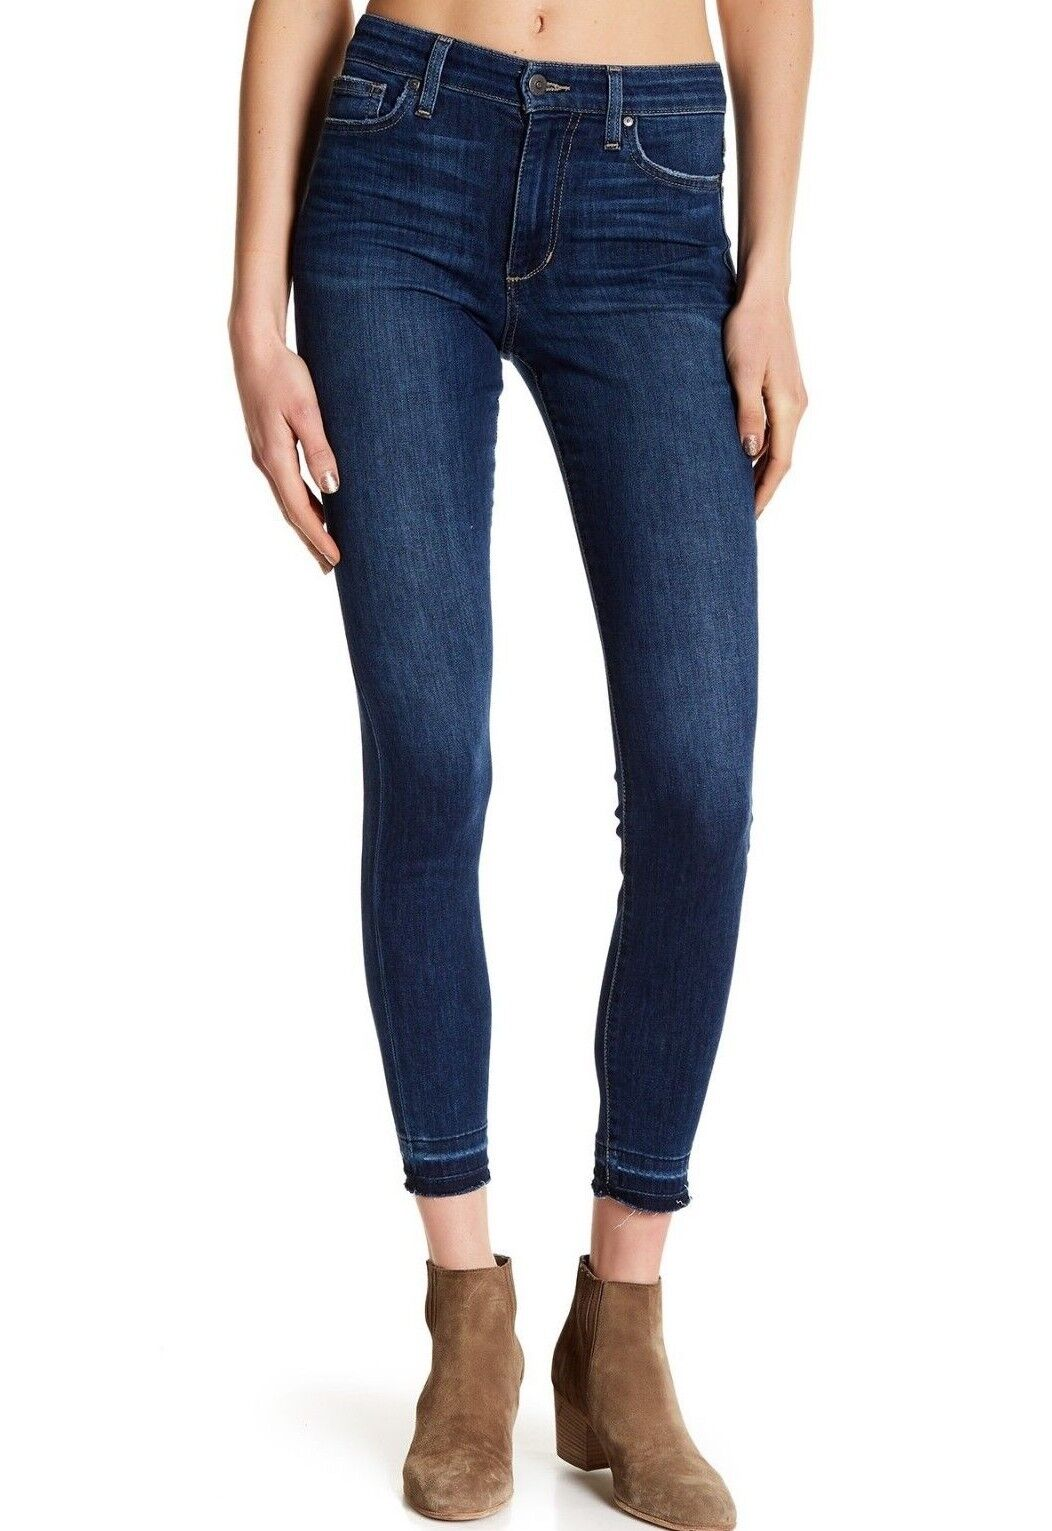 Nwt JOE´S Sz30 die Eng Anliegende Knöchel Roh Saum Hoher Stretch Jeans in Ruth